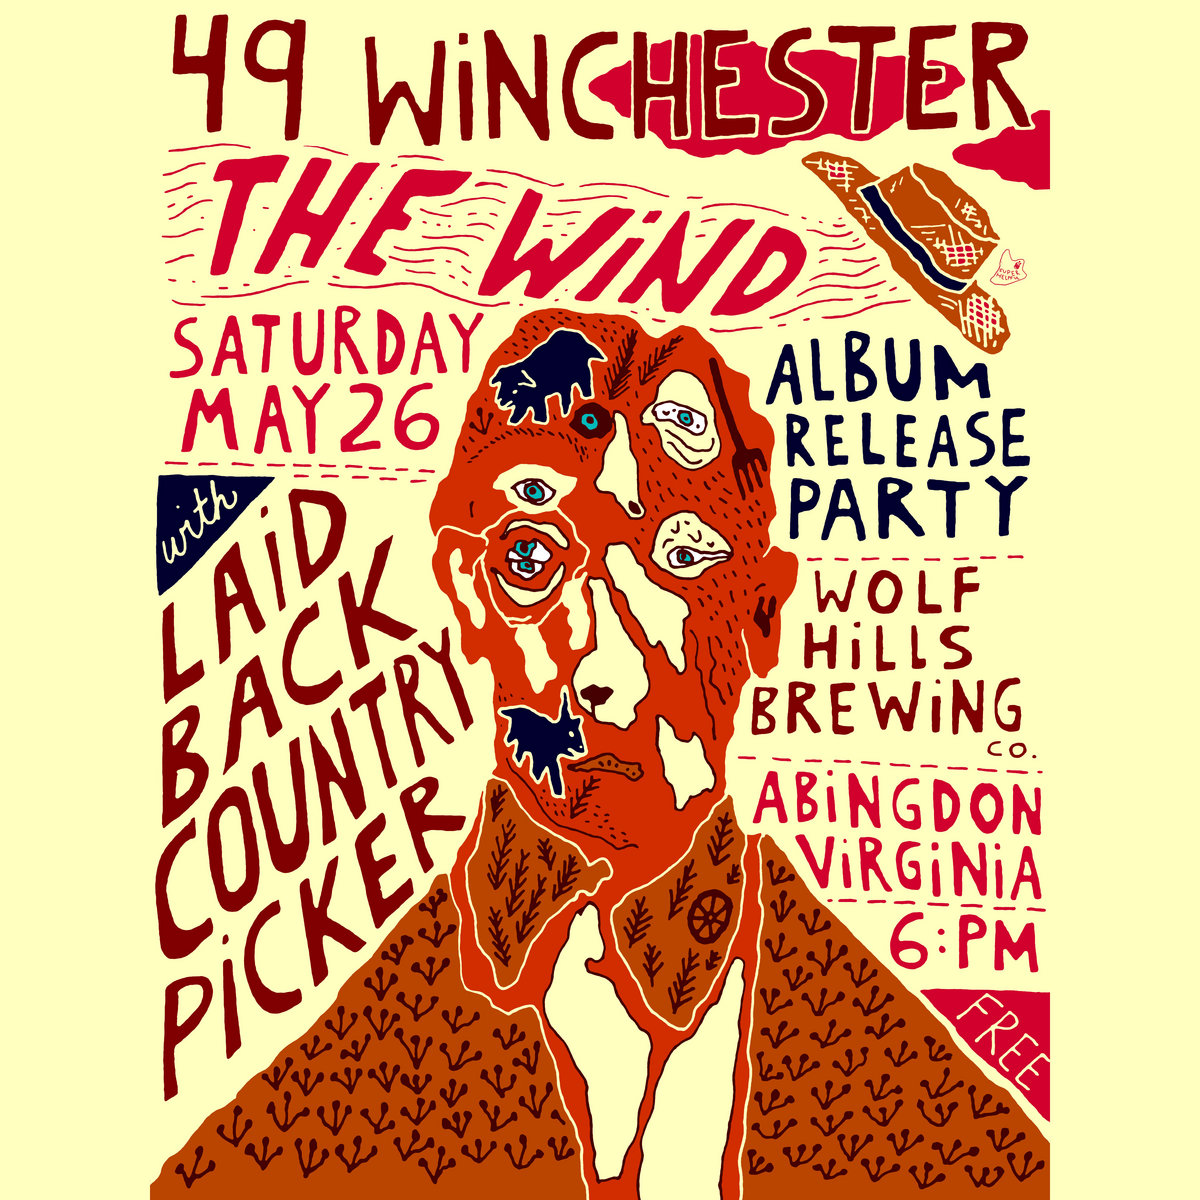 The Wind | 49 Winchester